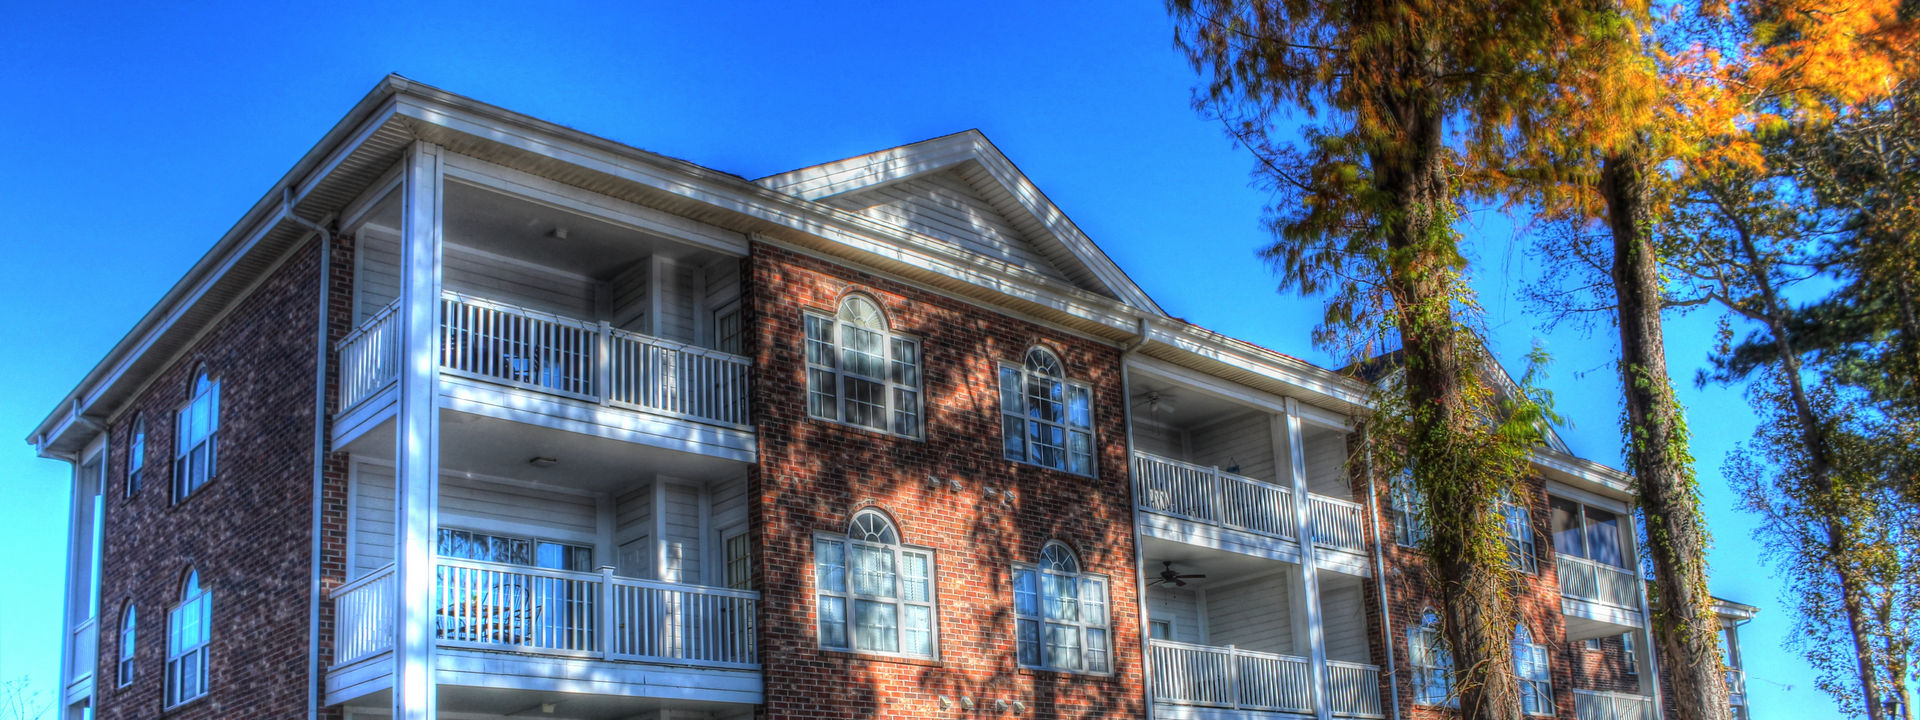 Condos & Townhomes For Rent in Myrtle Beach SC